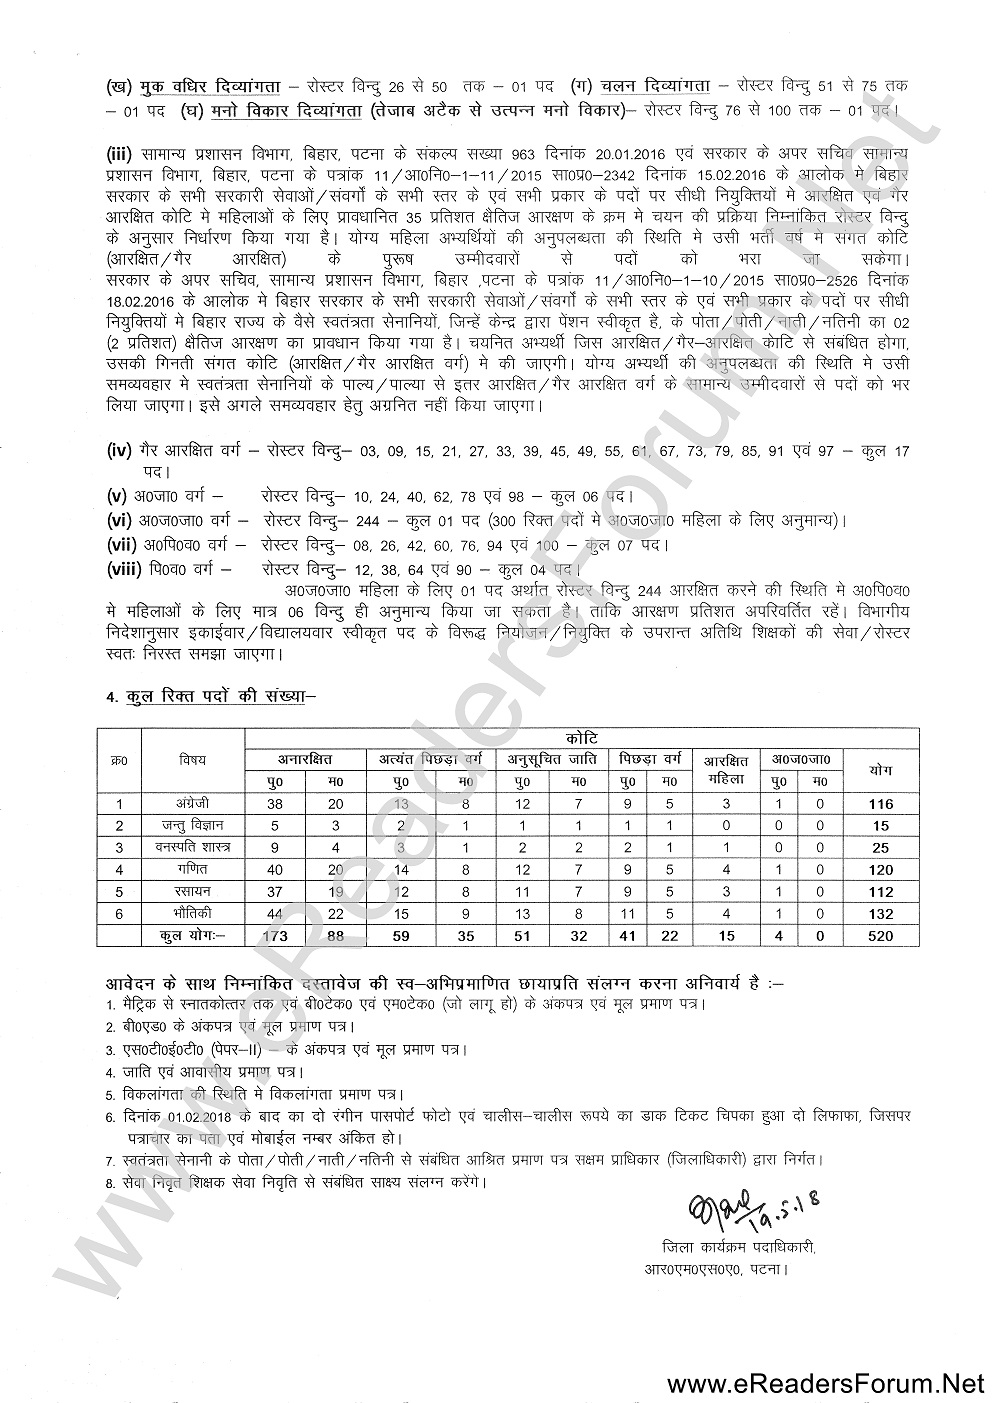 bihar-guest-teacher-application-notice